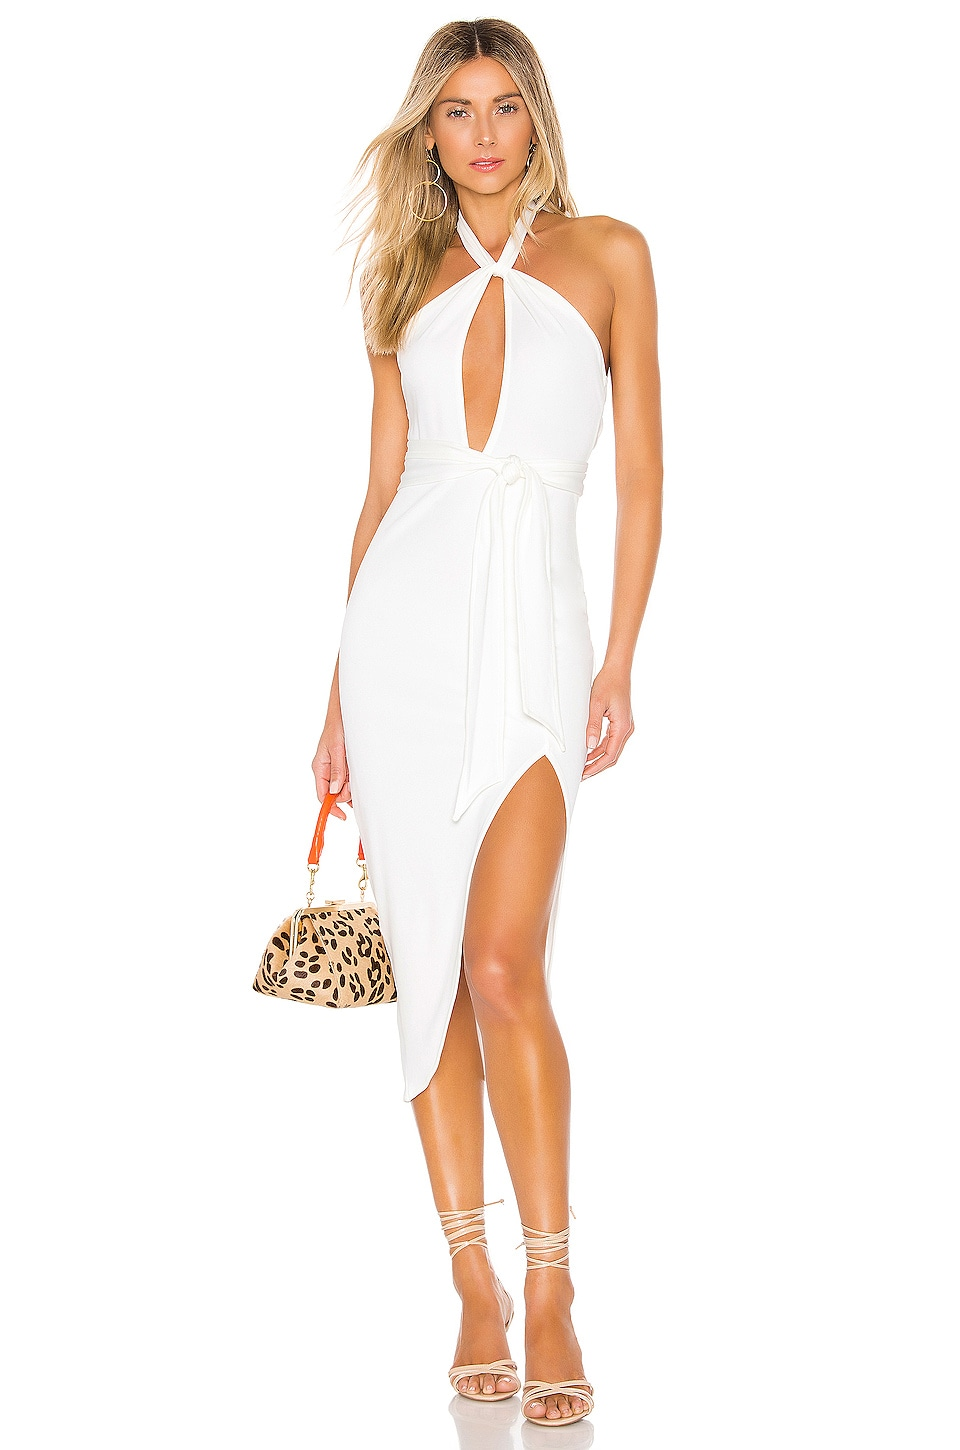 House of Harlow 1960 x REVOLVE Loretta Dress in Ivory